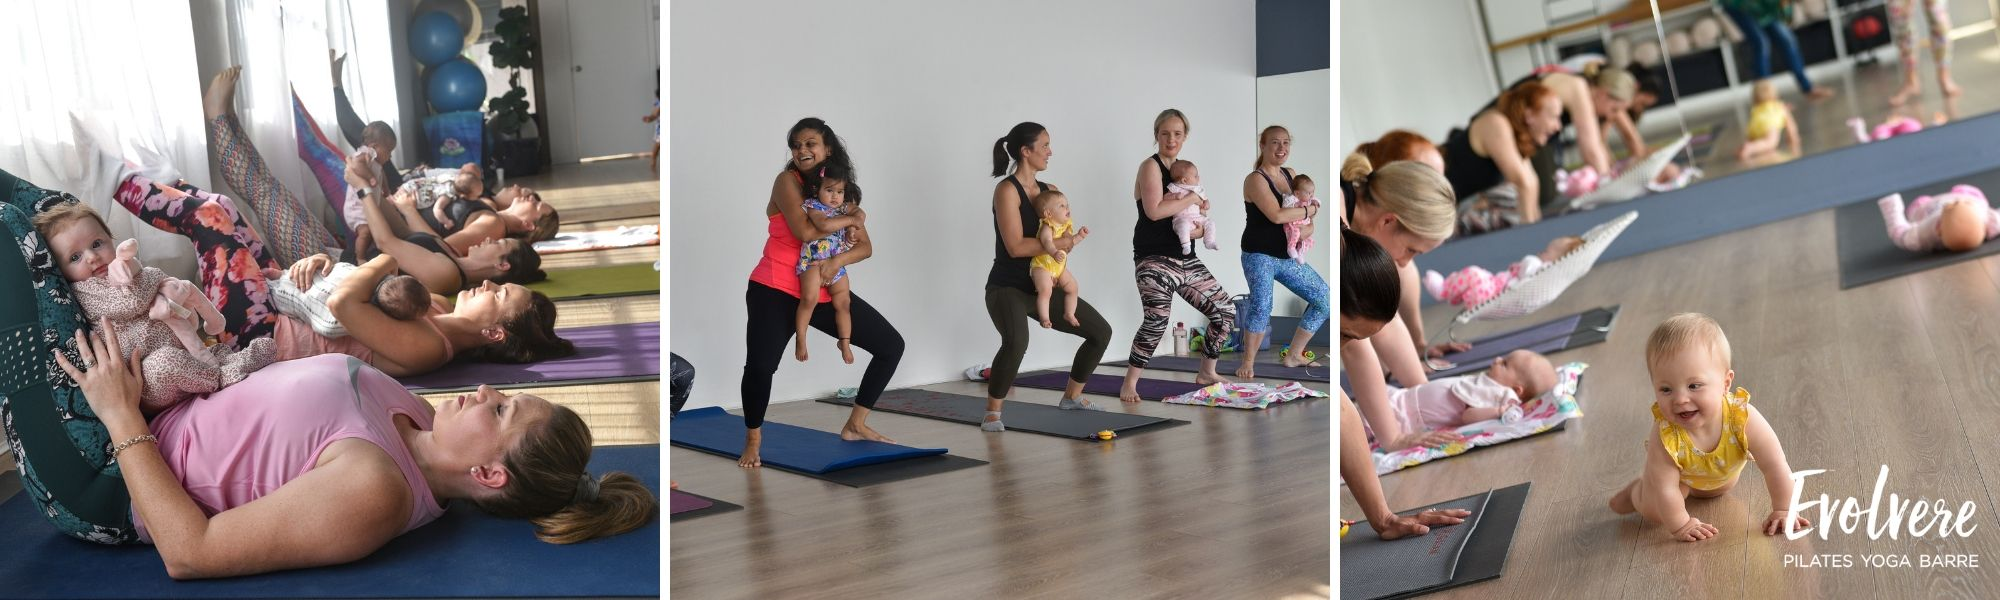 Mums and Bubs classes for postnatal recovery at Evolvere in Lane Cove Sydney